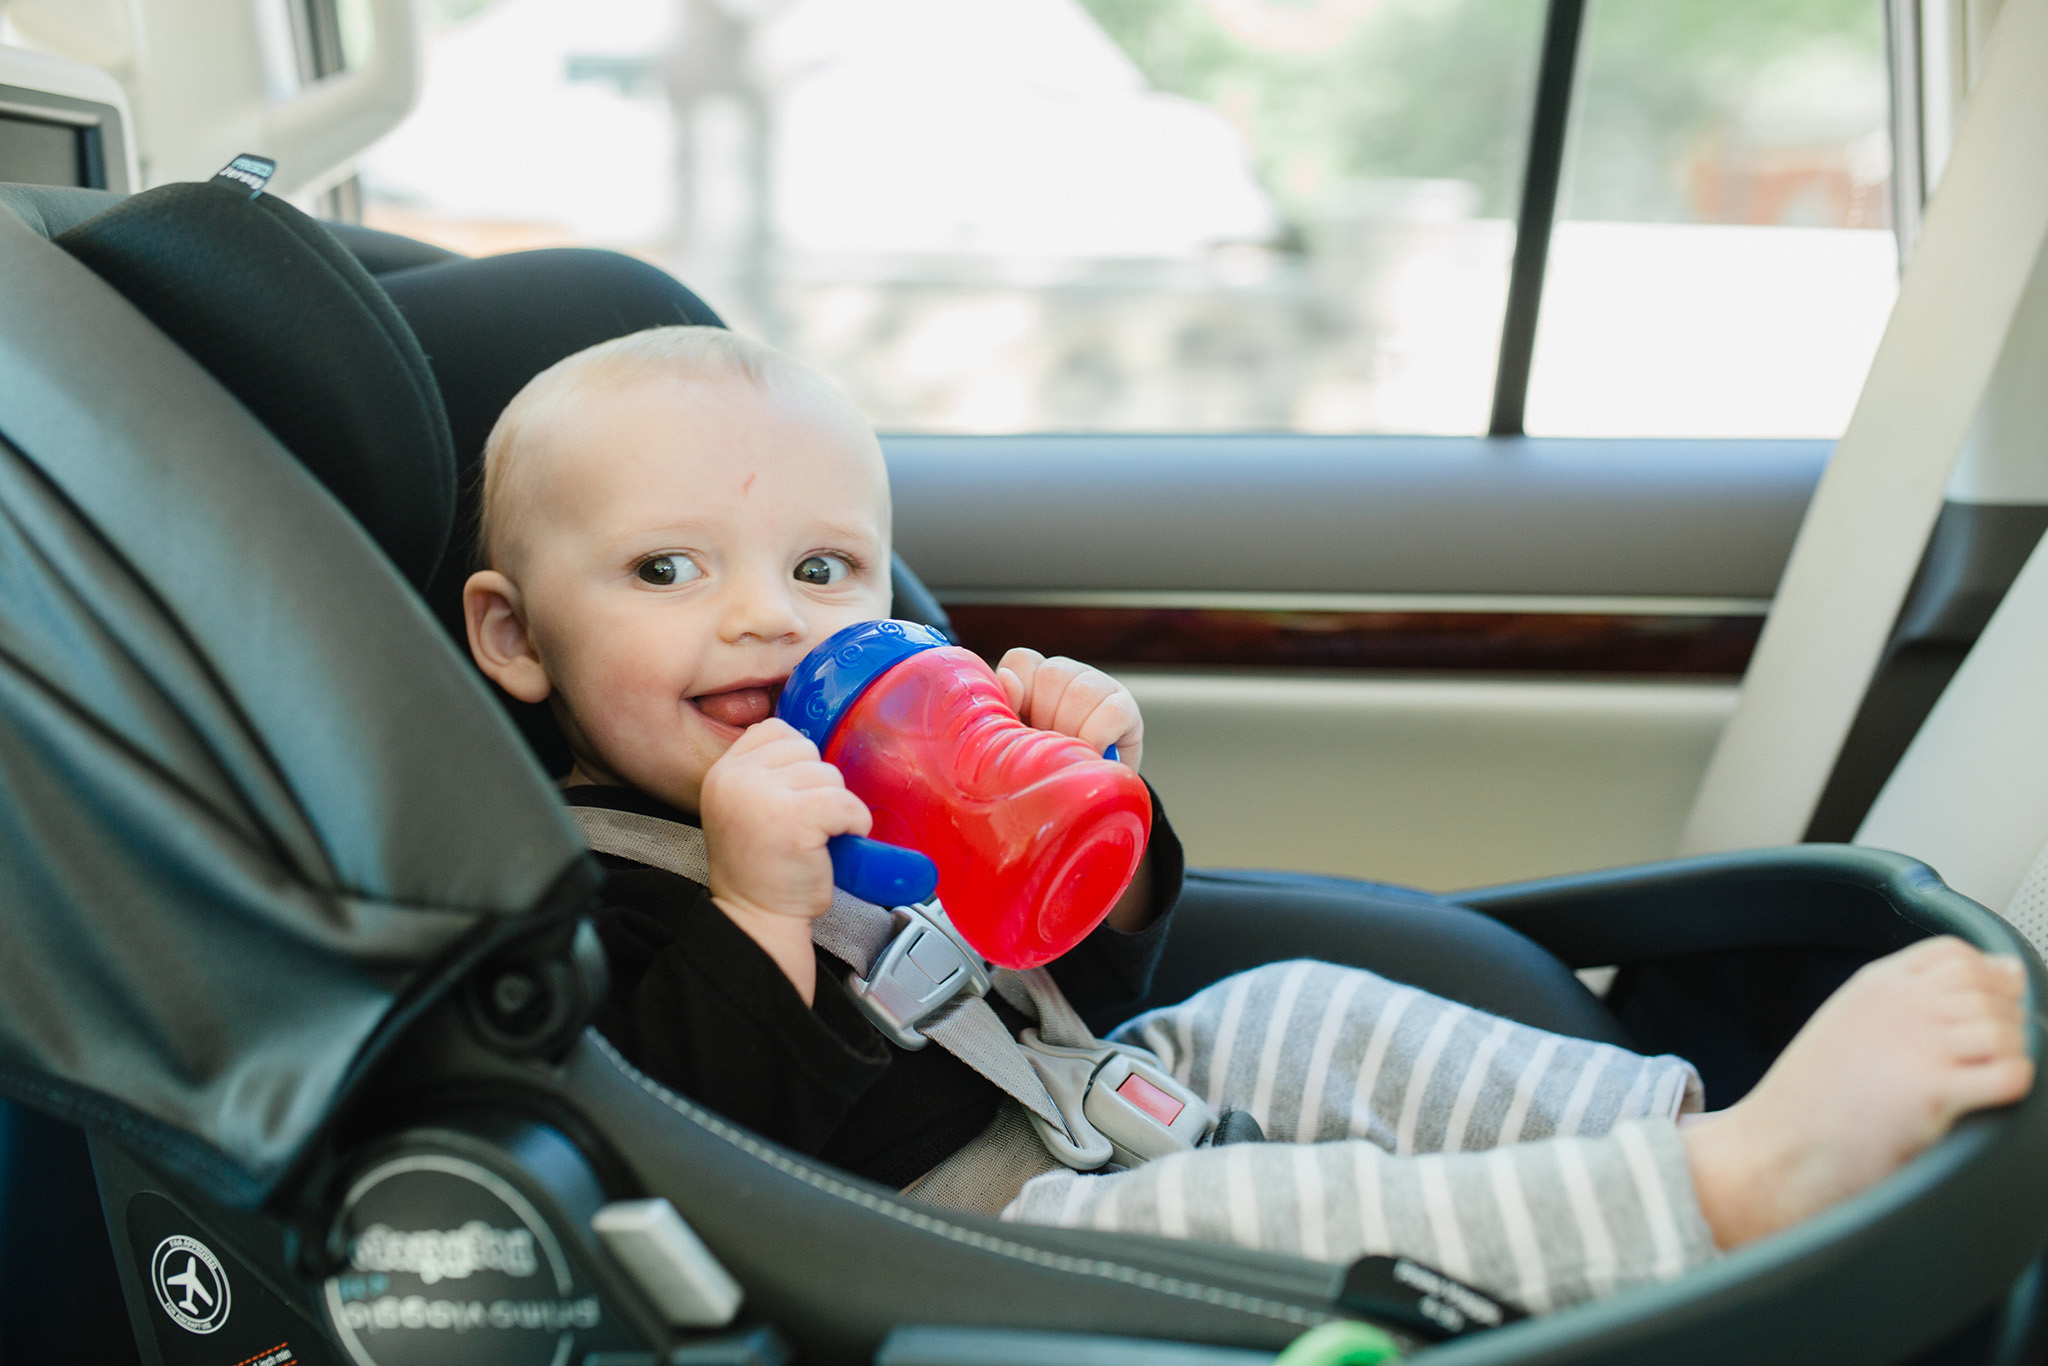 April 6: On the way to the airport with this little buddy. I love how babies live in the very presentest tense. He didn't know we were about to say goodbye; he only knew that he was happy to be in the backseat with his auntie.